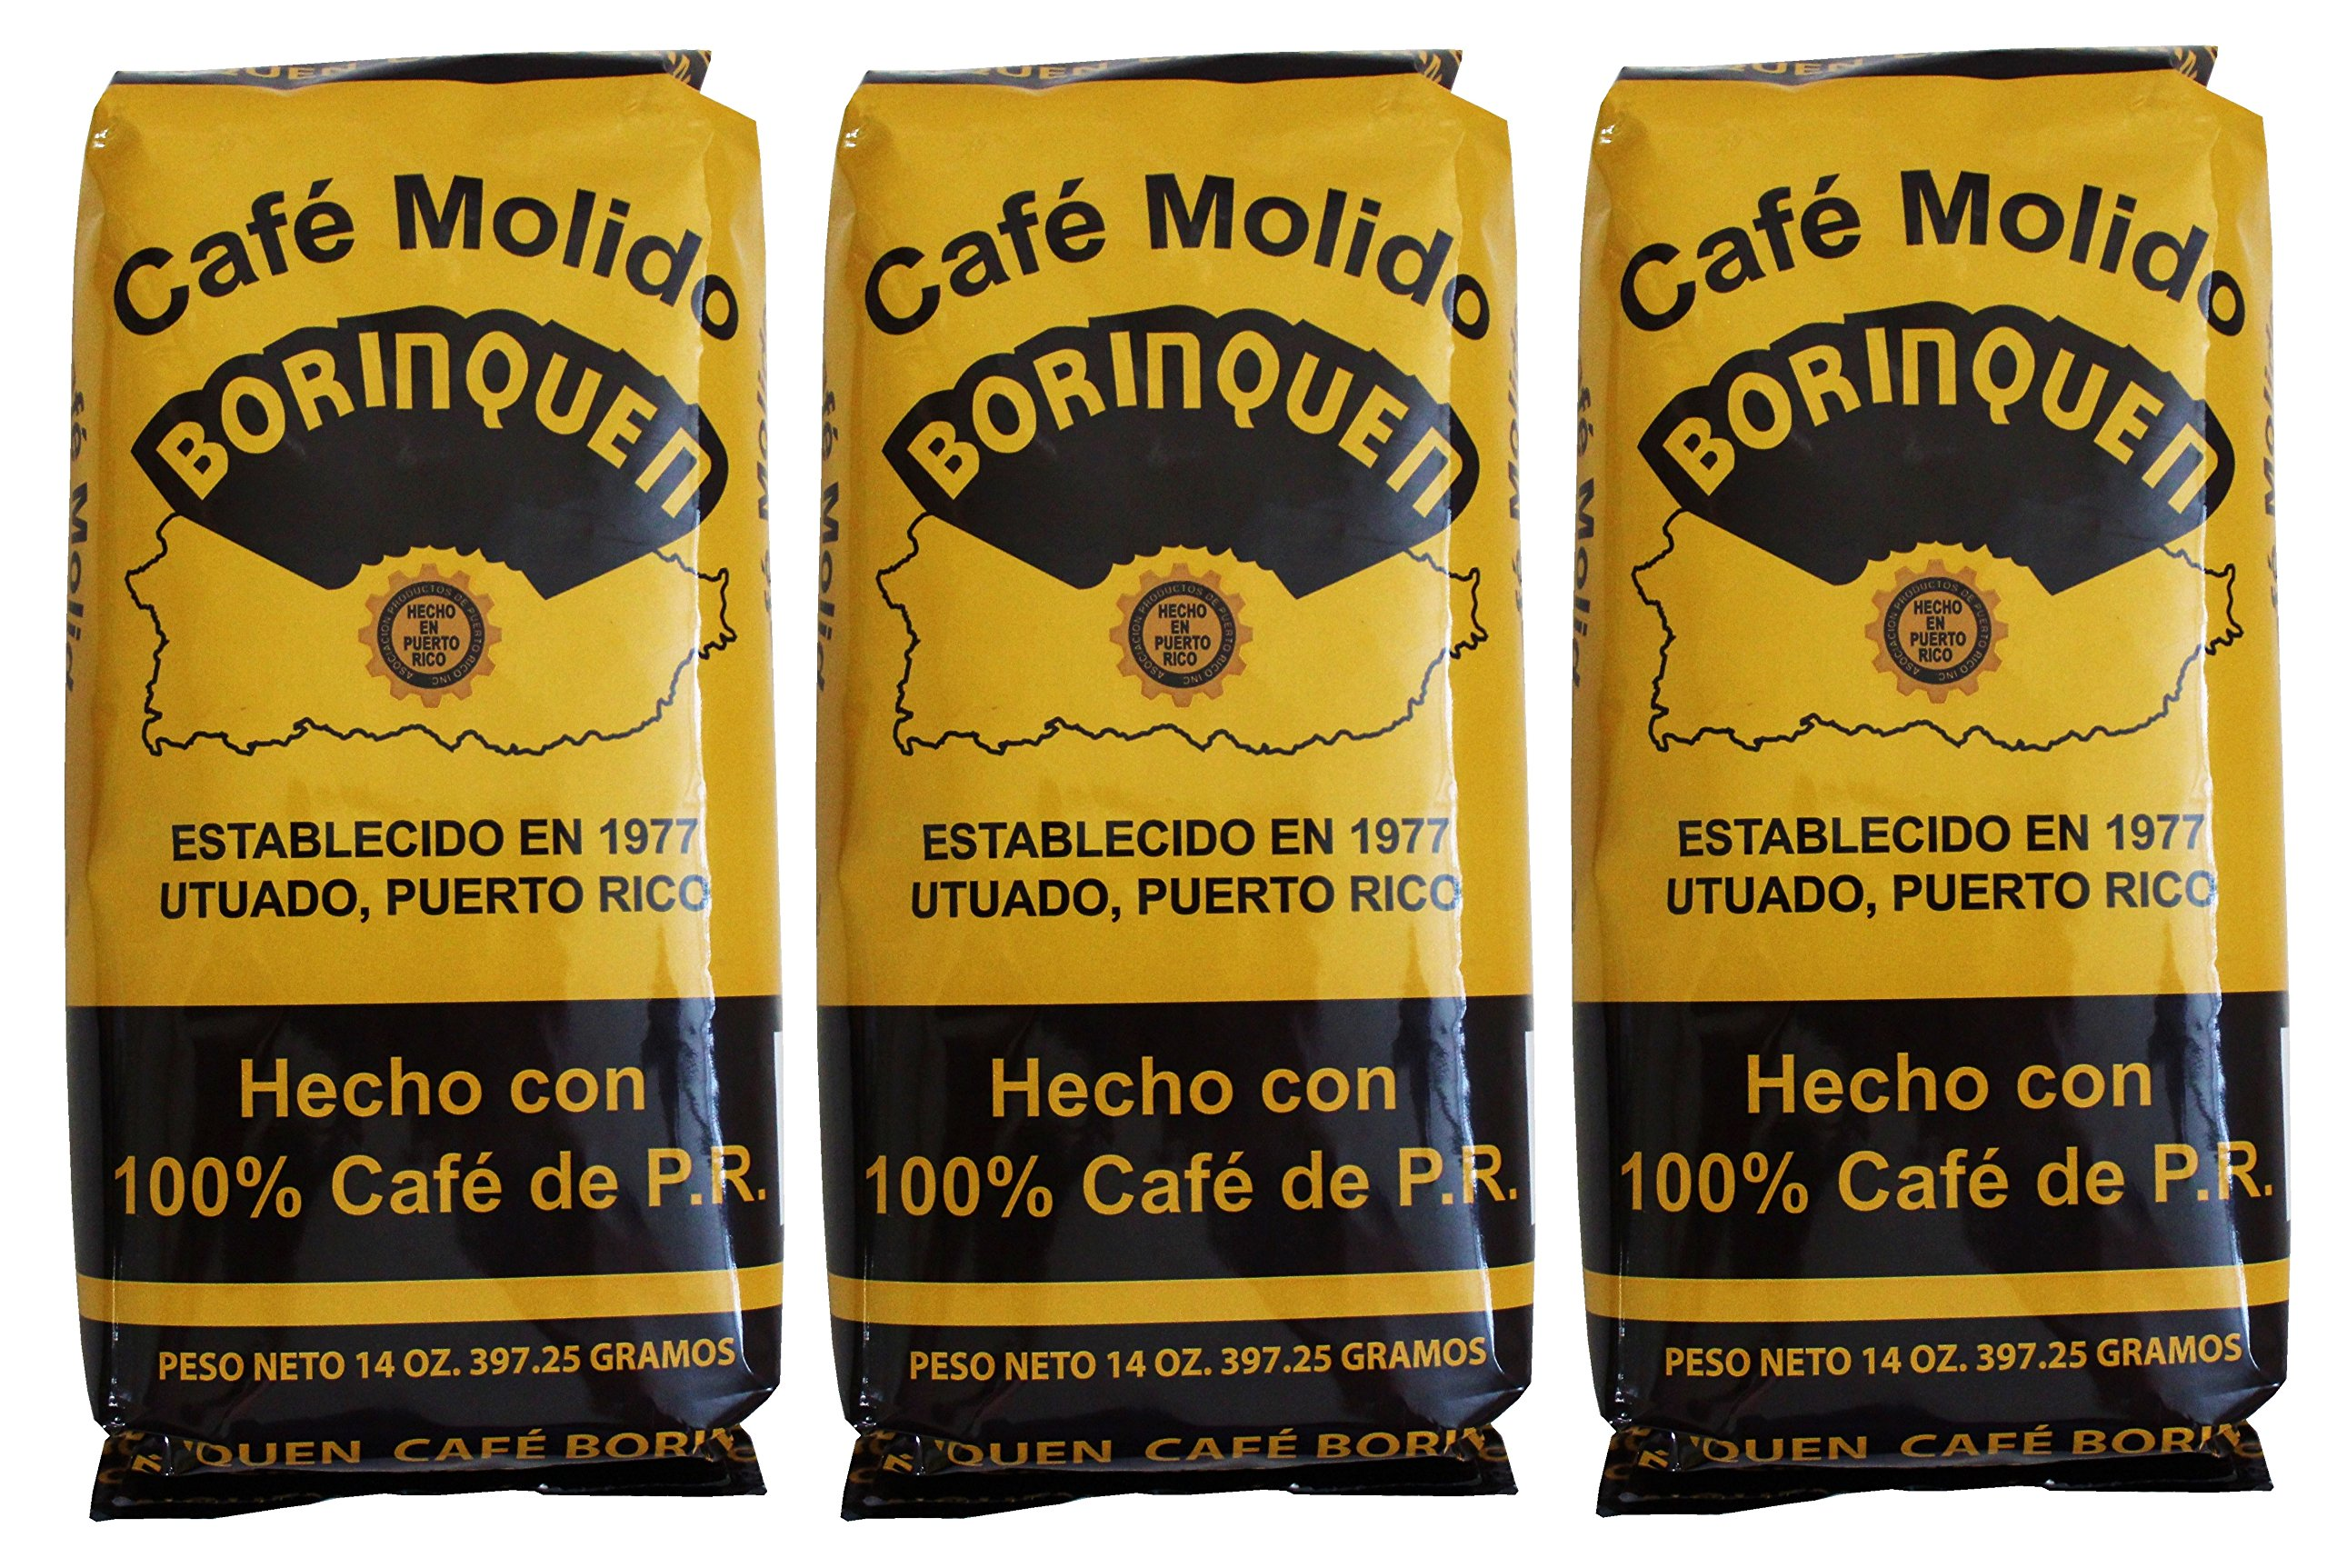 Cafe Molido Borinquen Pure Ground Coffee From Puerto Rico Mountains 14 Ounces Bags (3 Pack